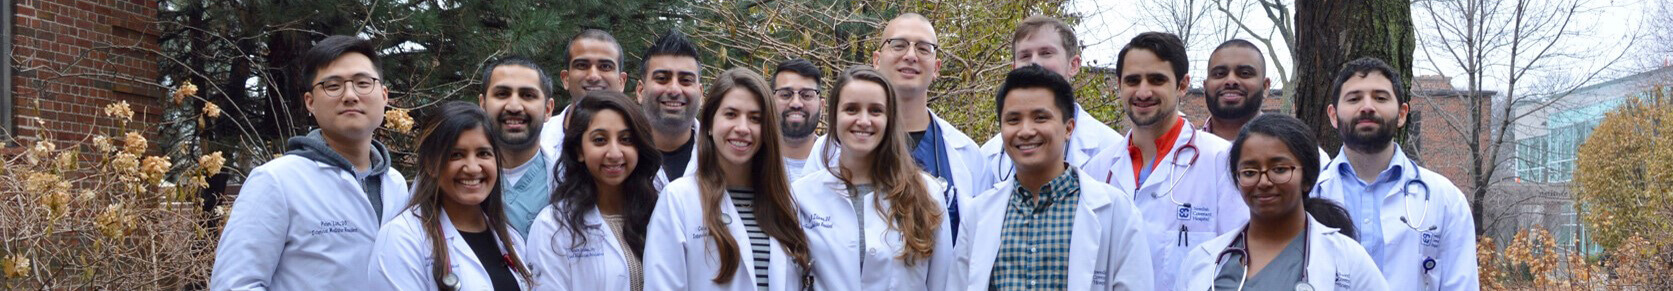 About Our Family Medicine Residency Program